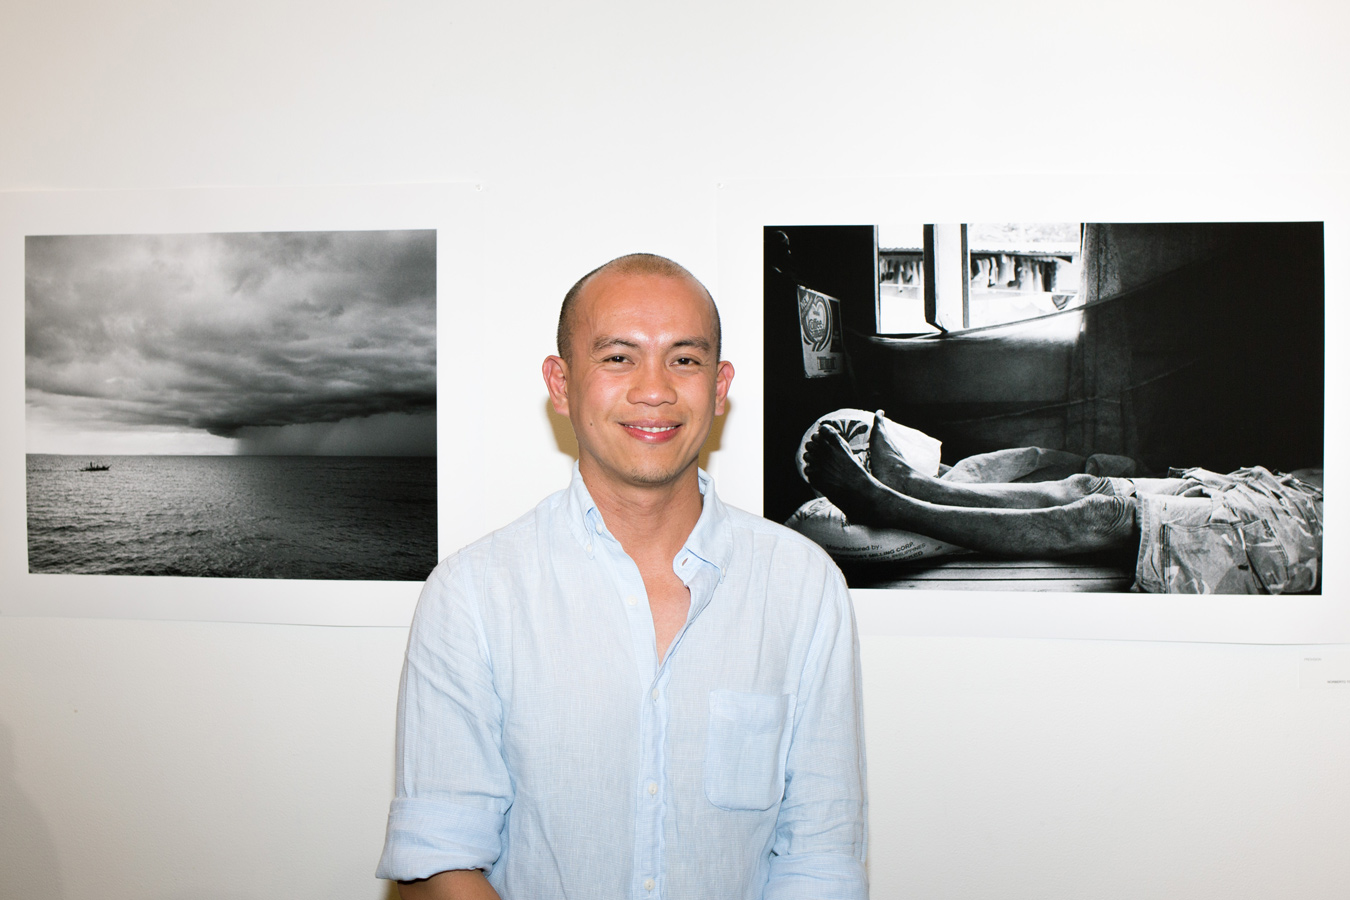 Norberto Tongoy, Runner-Up at the 2017 SUNSTUDIOS Emerging Photographer Award in Sydney